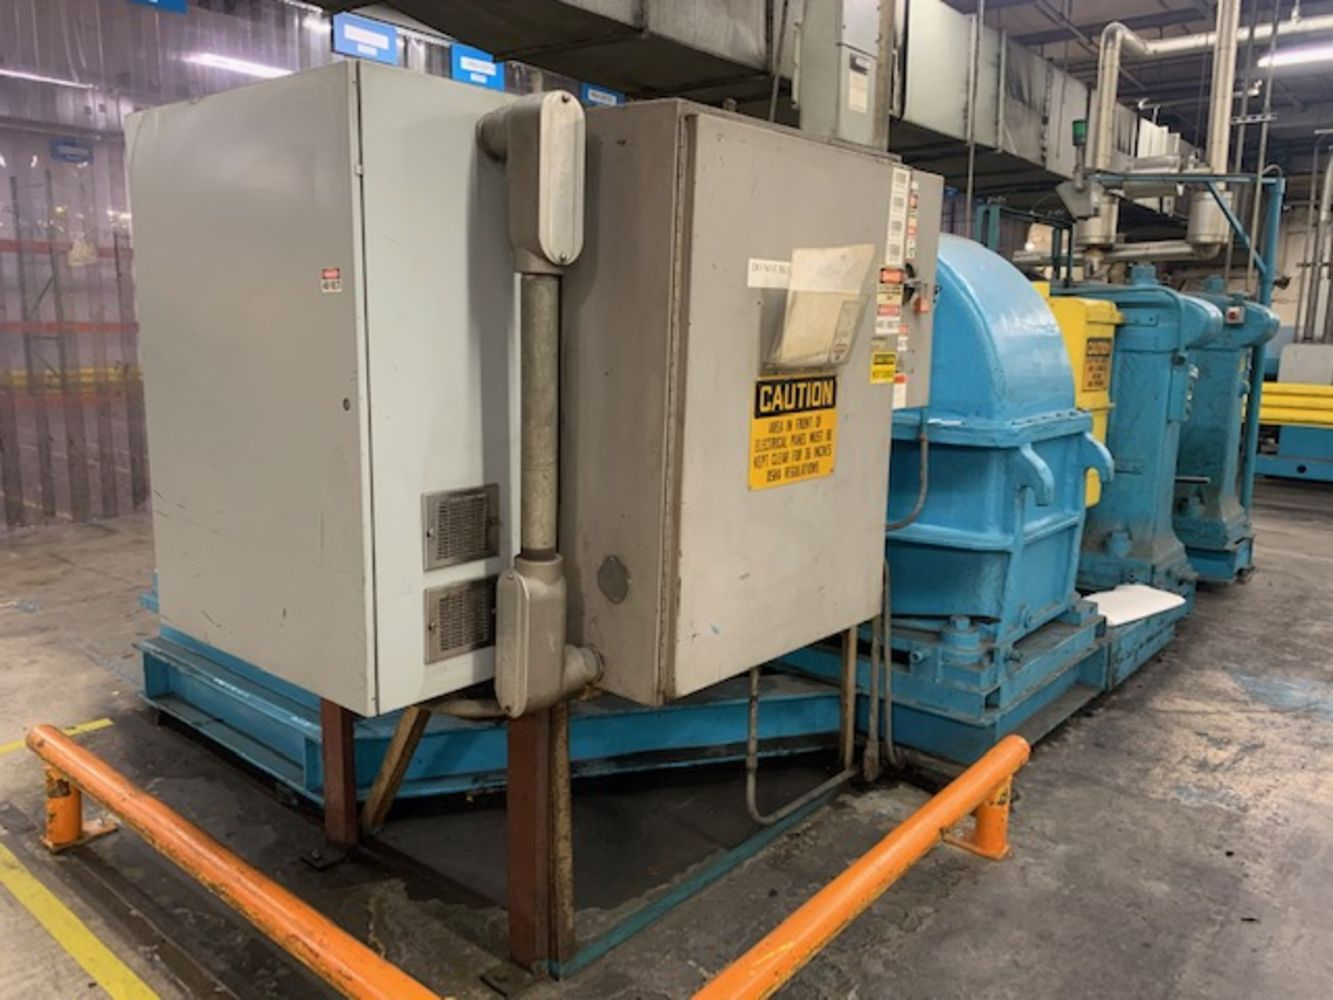 Day 1  Rubber MFG Equipment - Plant Liquidation - Manufacturer Closing Operations